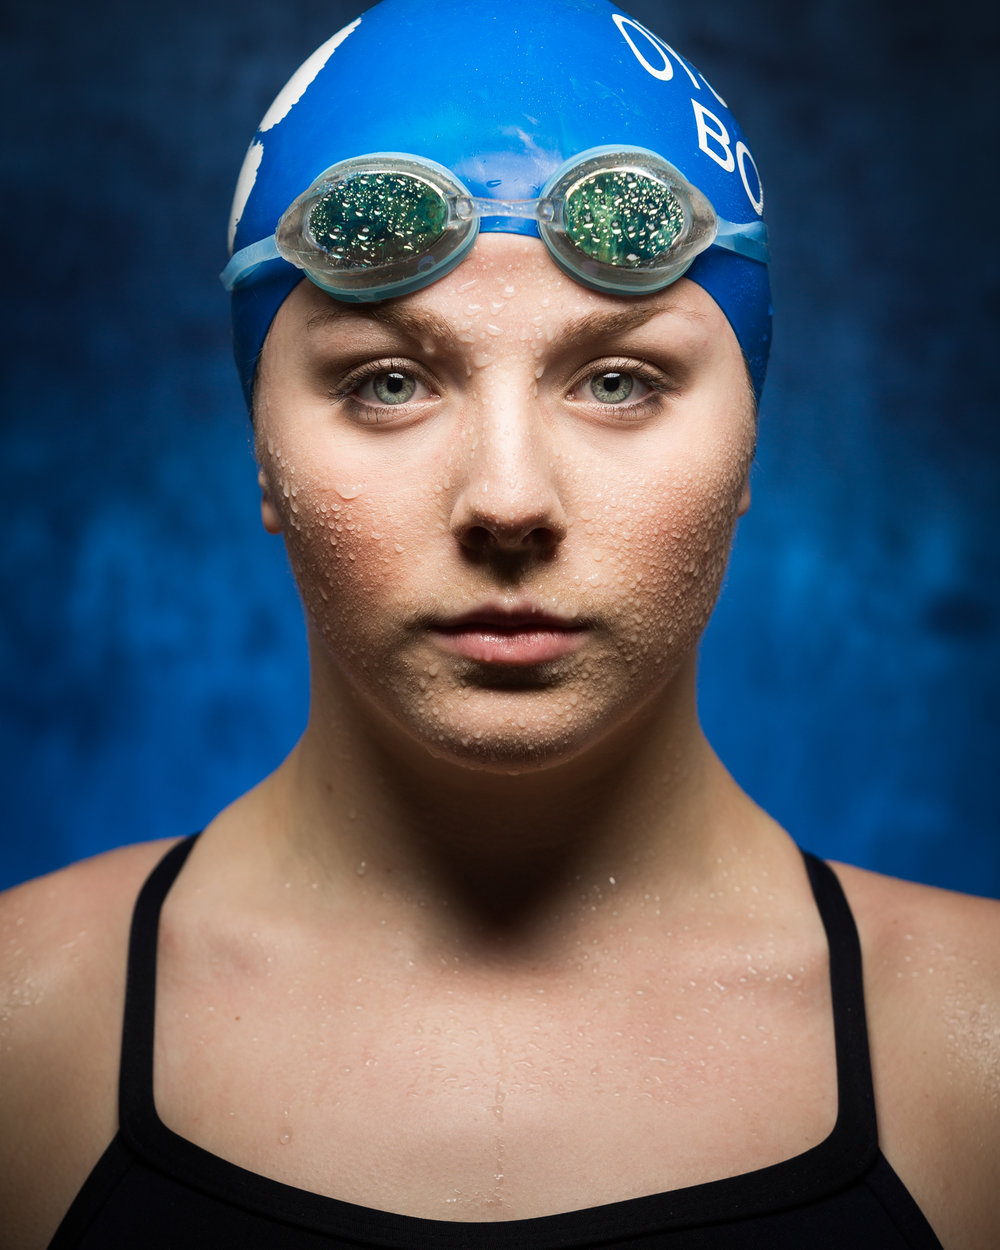 high-school-swimmer-portrait-photo-photography-photographer-dover-new-hampshire-boston.jpg